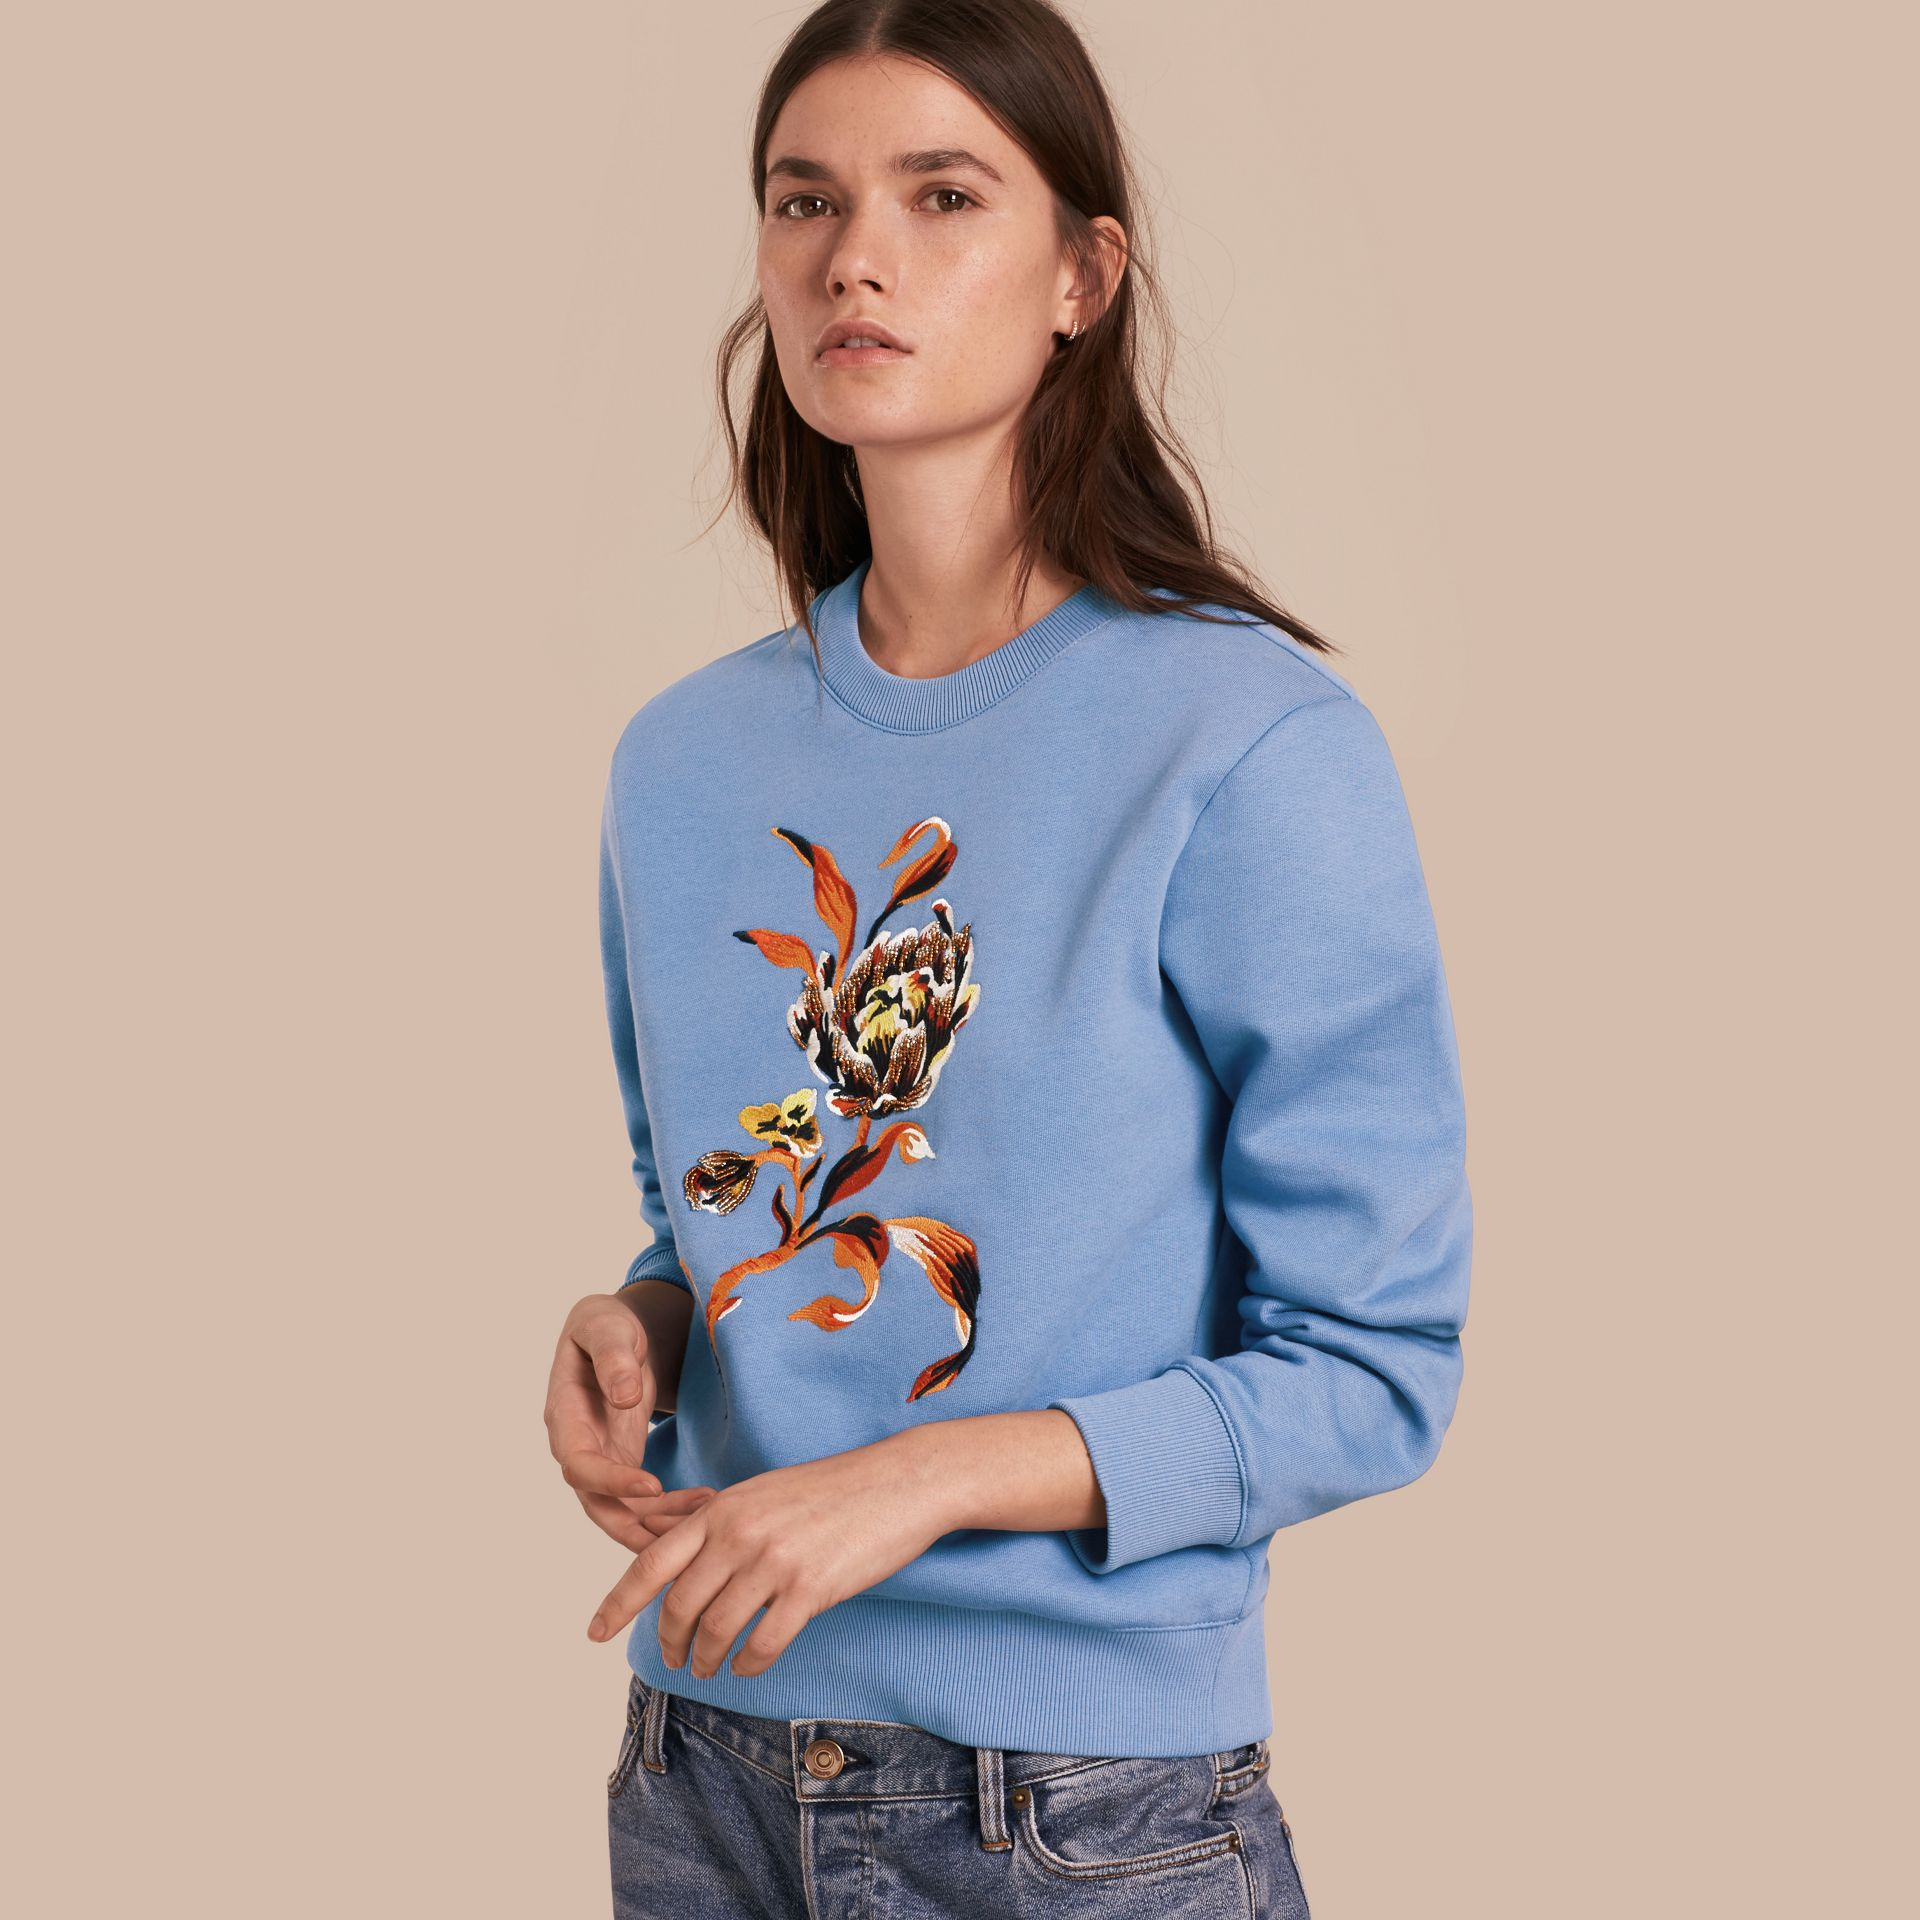 Embroidered Floral Motif Cotton Blend Sweatshirt Pale Hydrangea Blue - gallery image 1